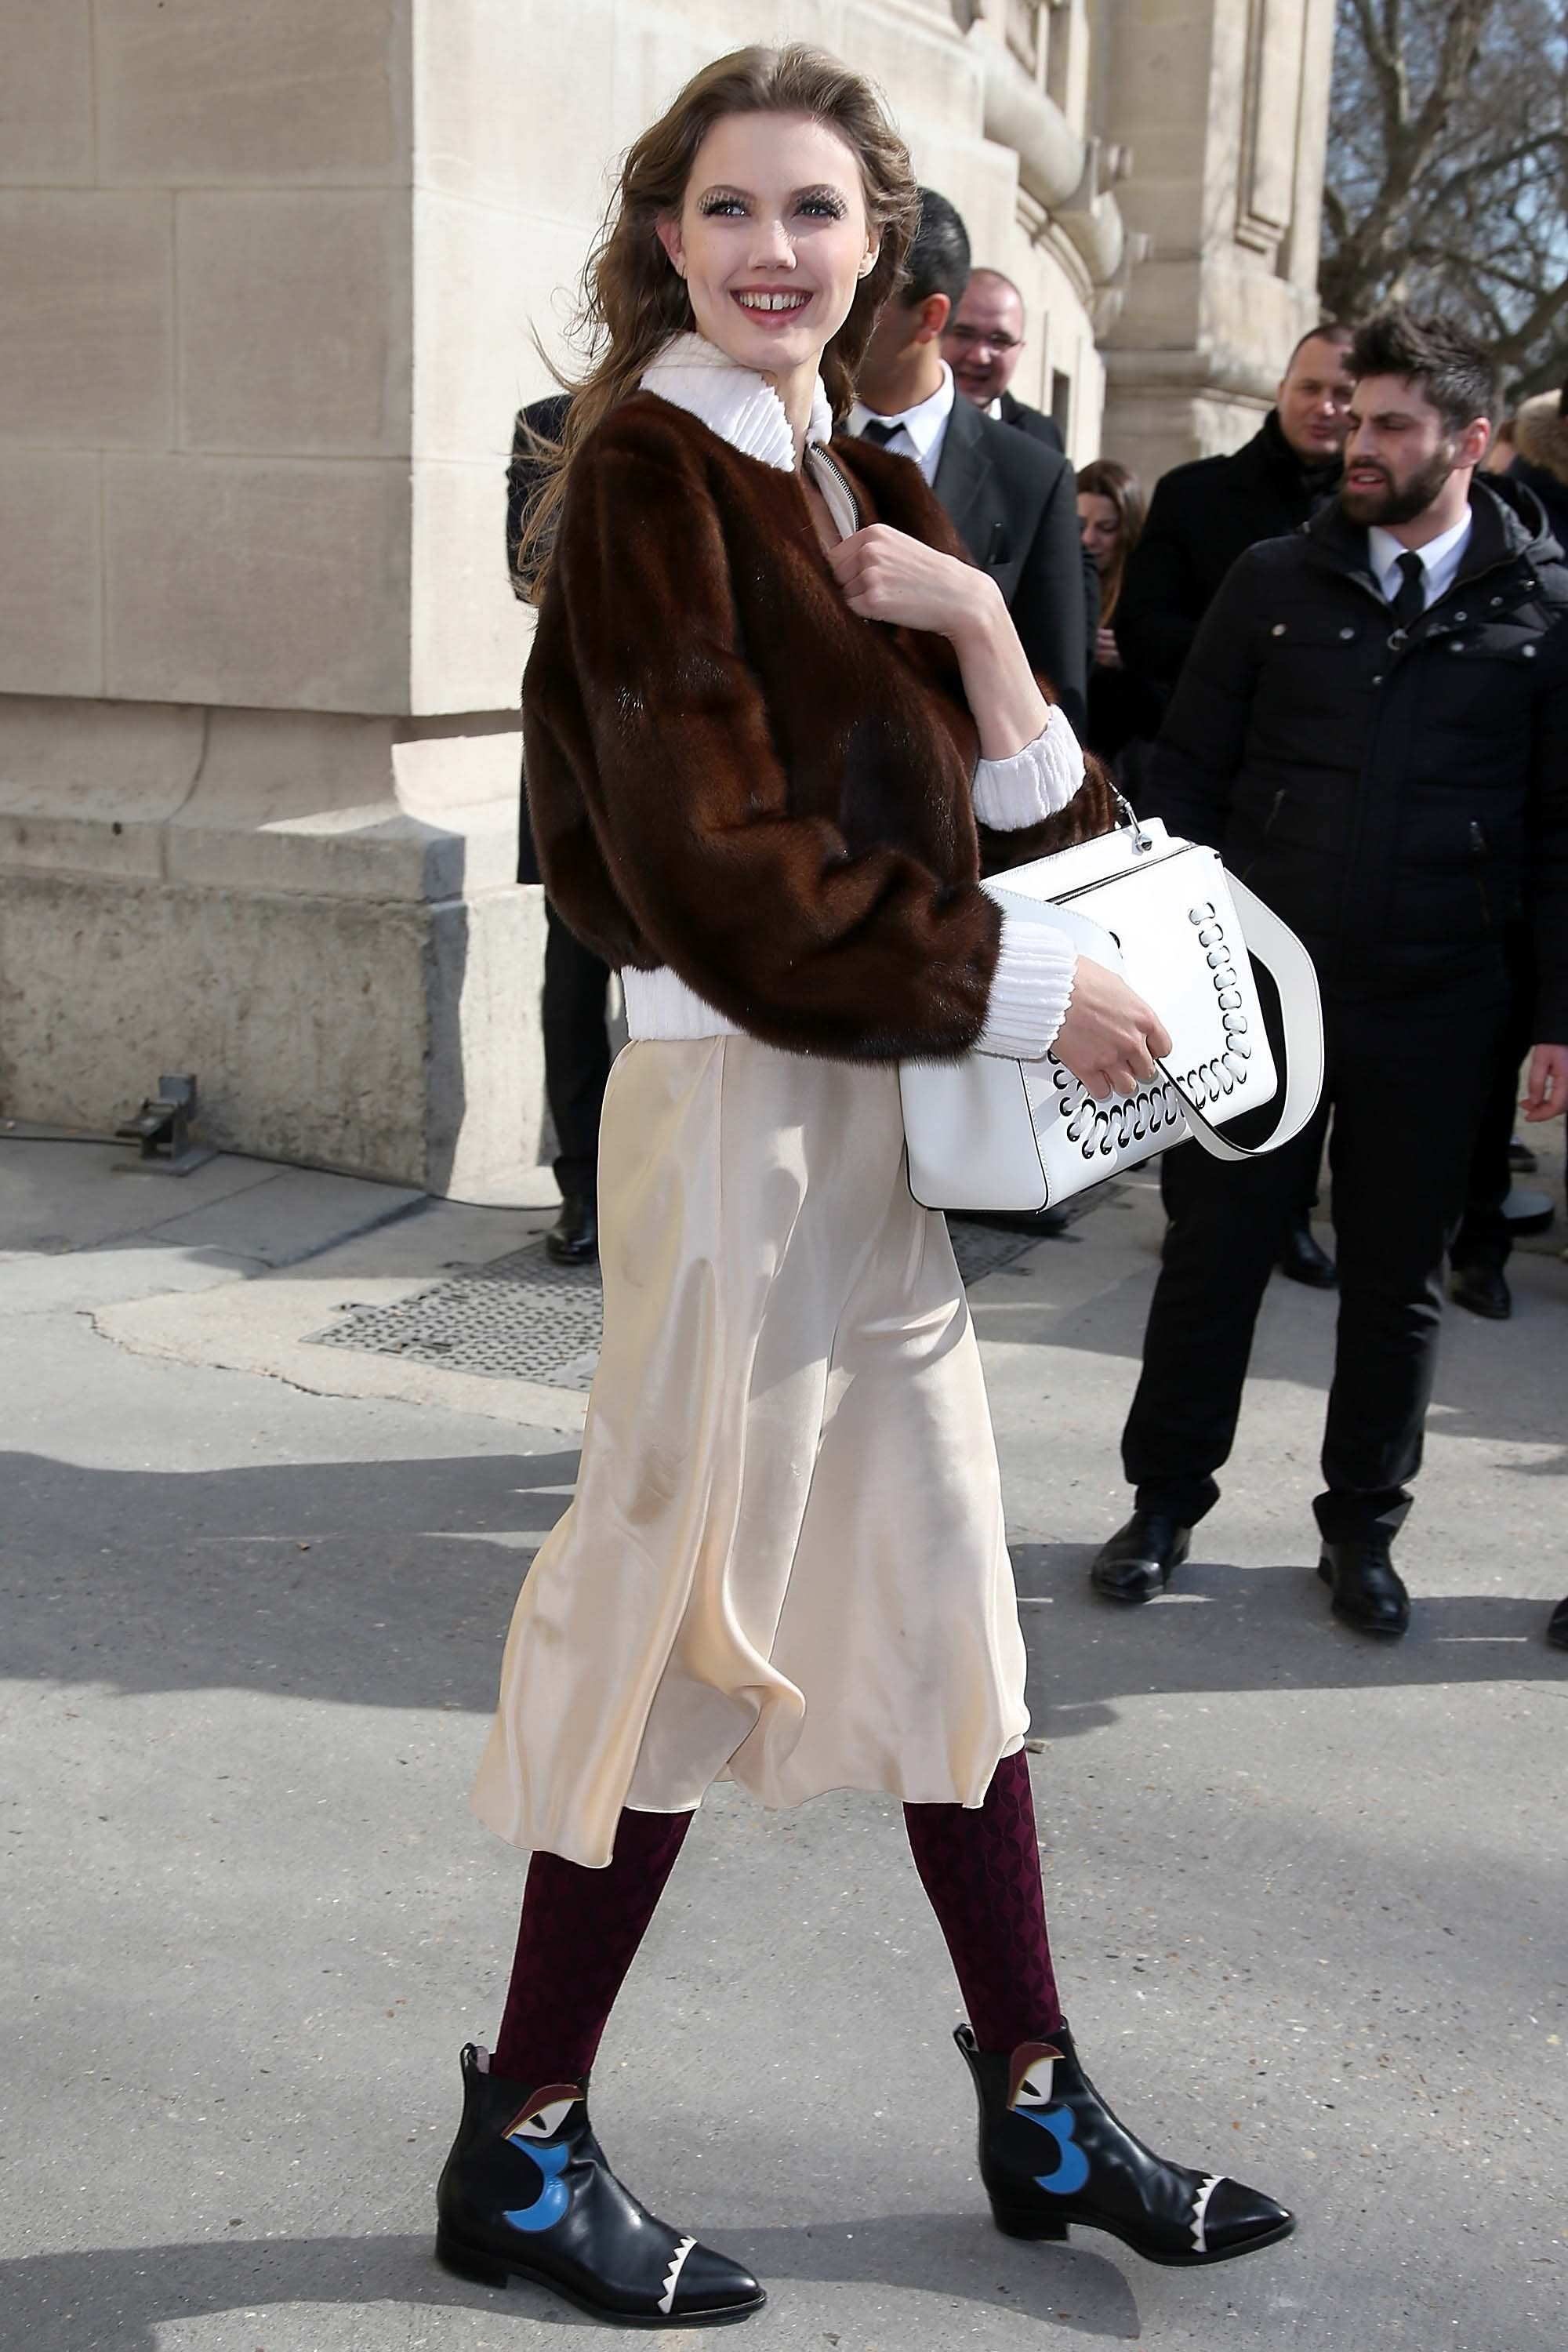 WHO: Lindsey Wixson WHAT: Fendi boots WHERE: On the street, Paris WHEN: March 8, 2016